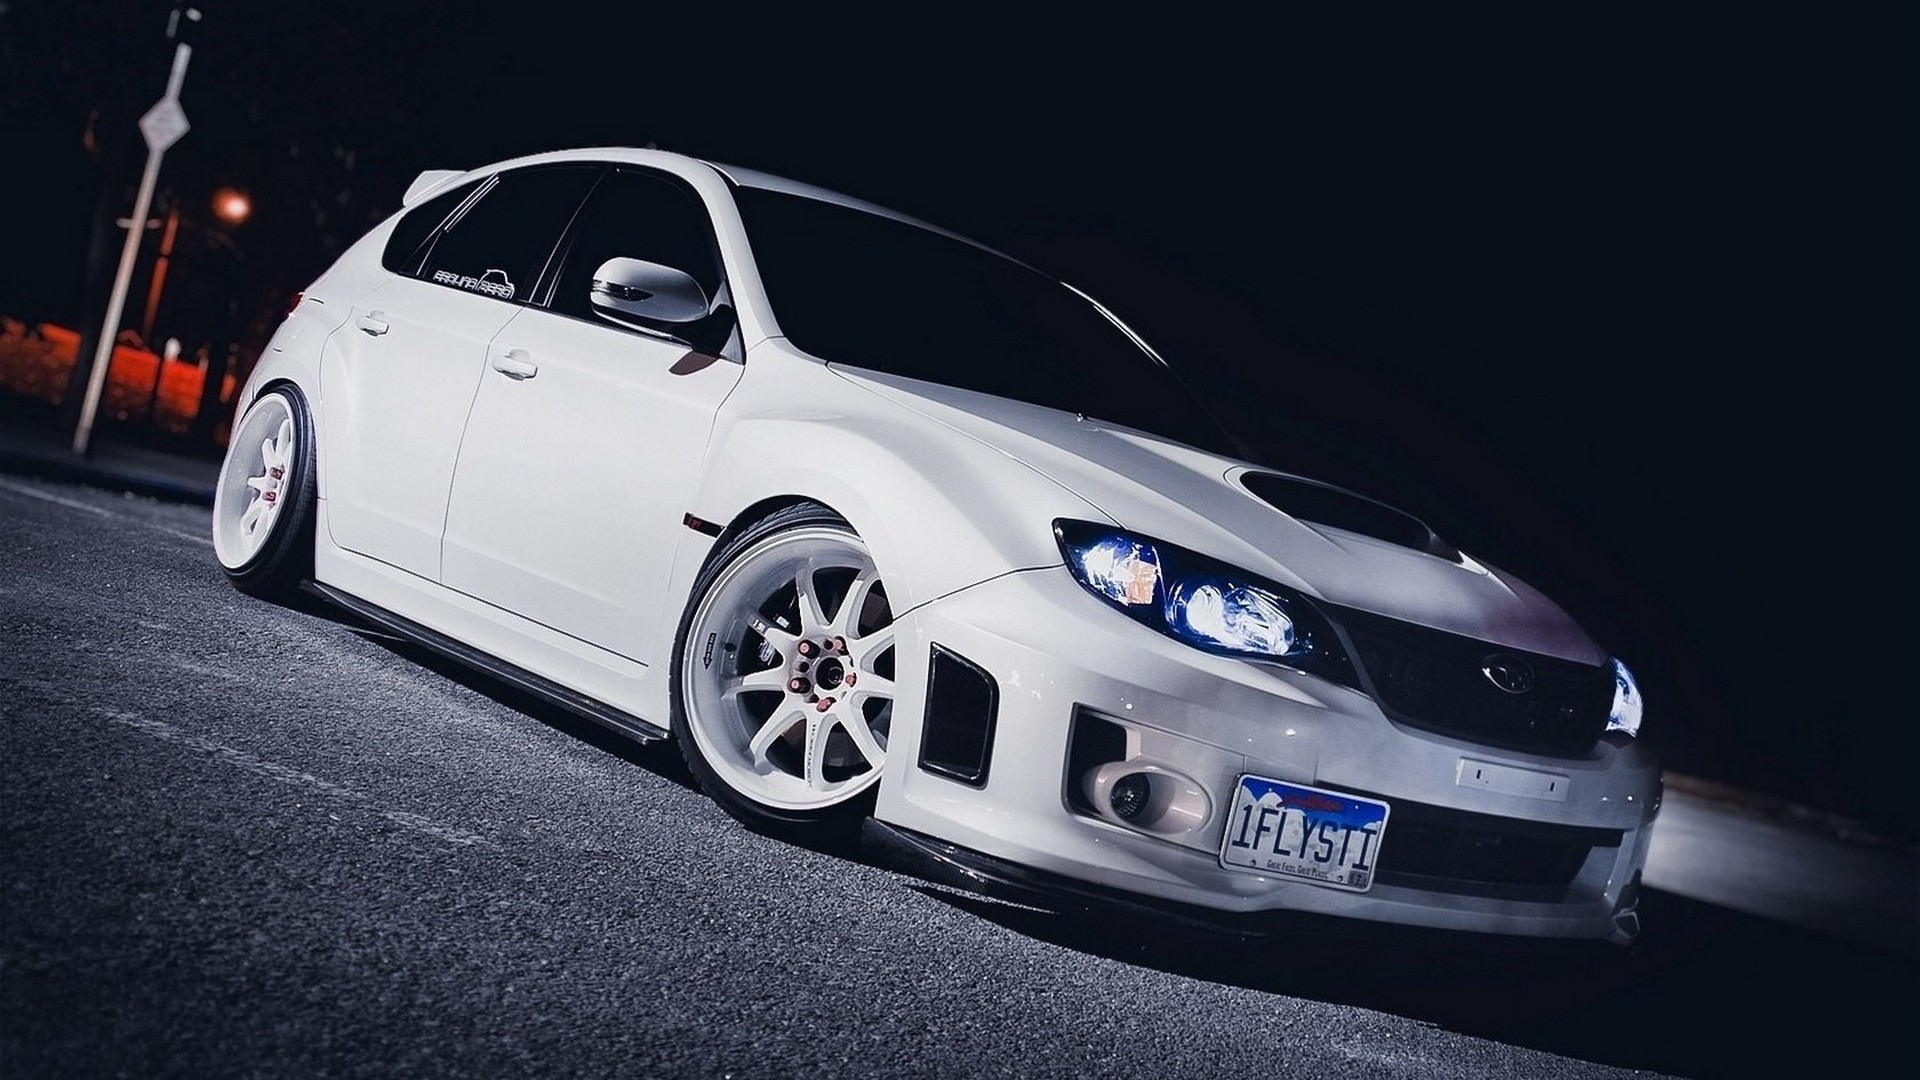 Jdm Car Wallpaper